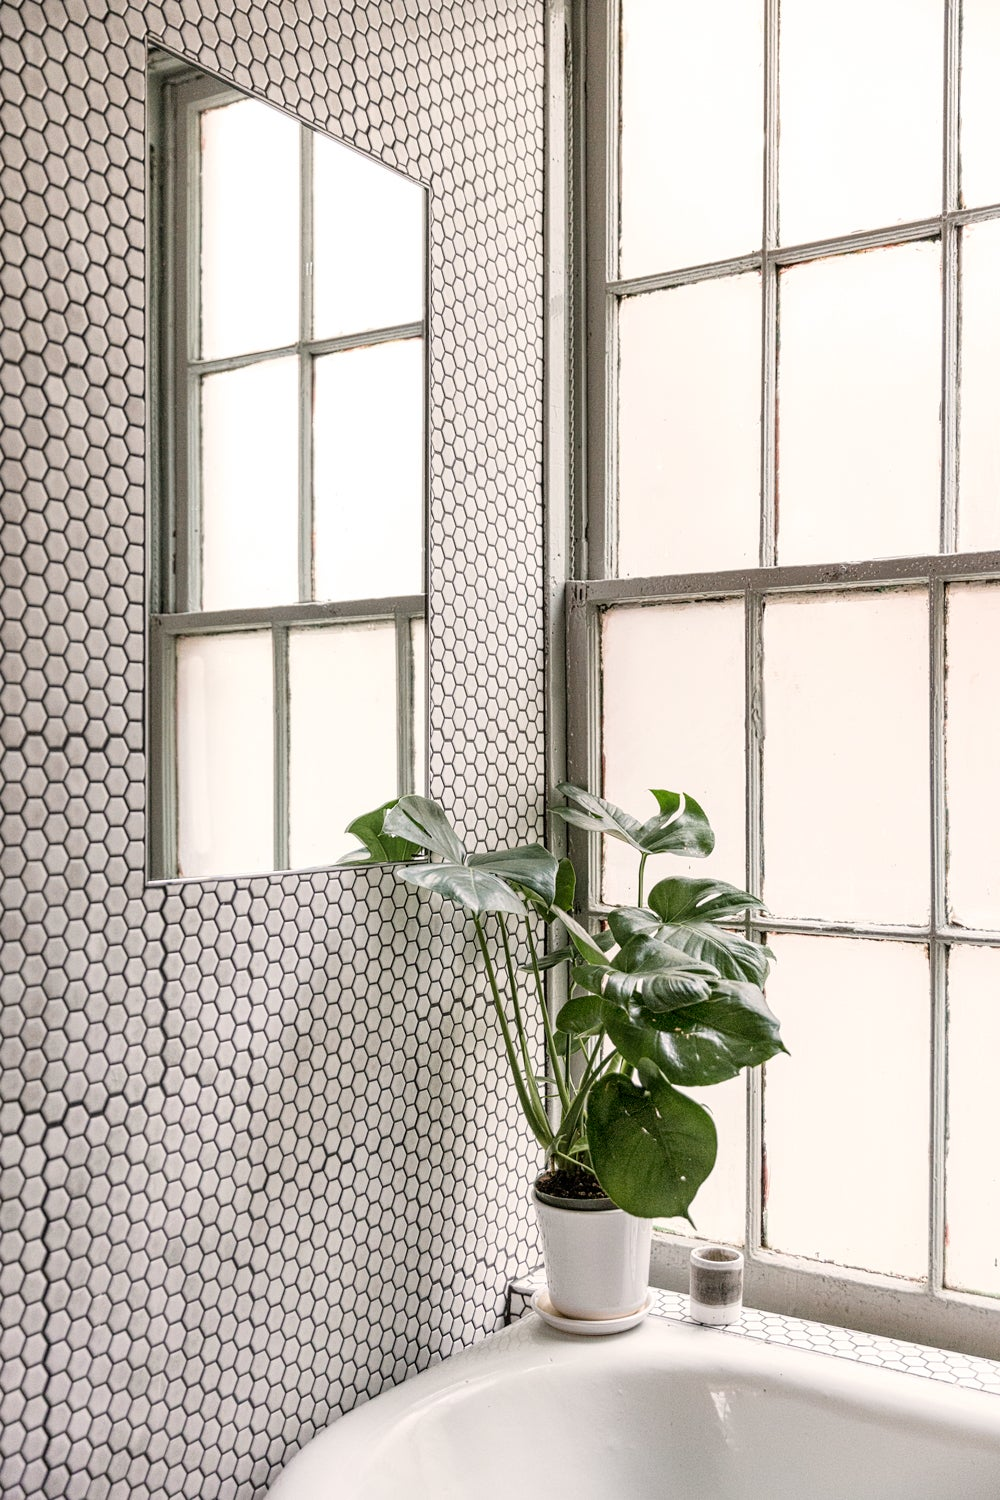 clean_grout_photo_by_AaronBengochea_03